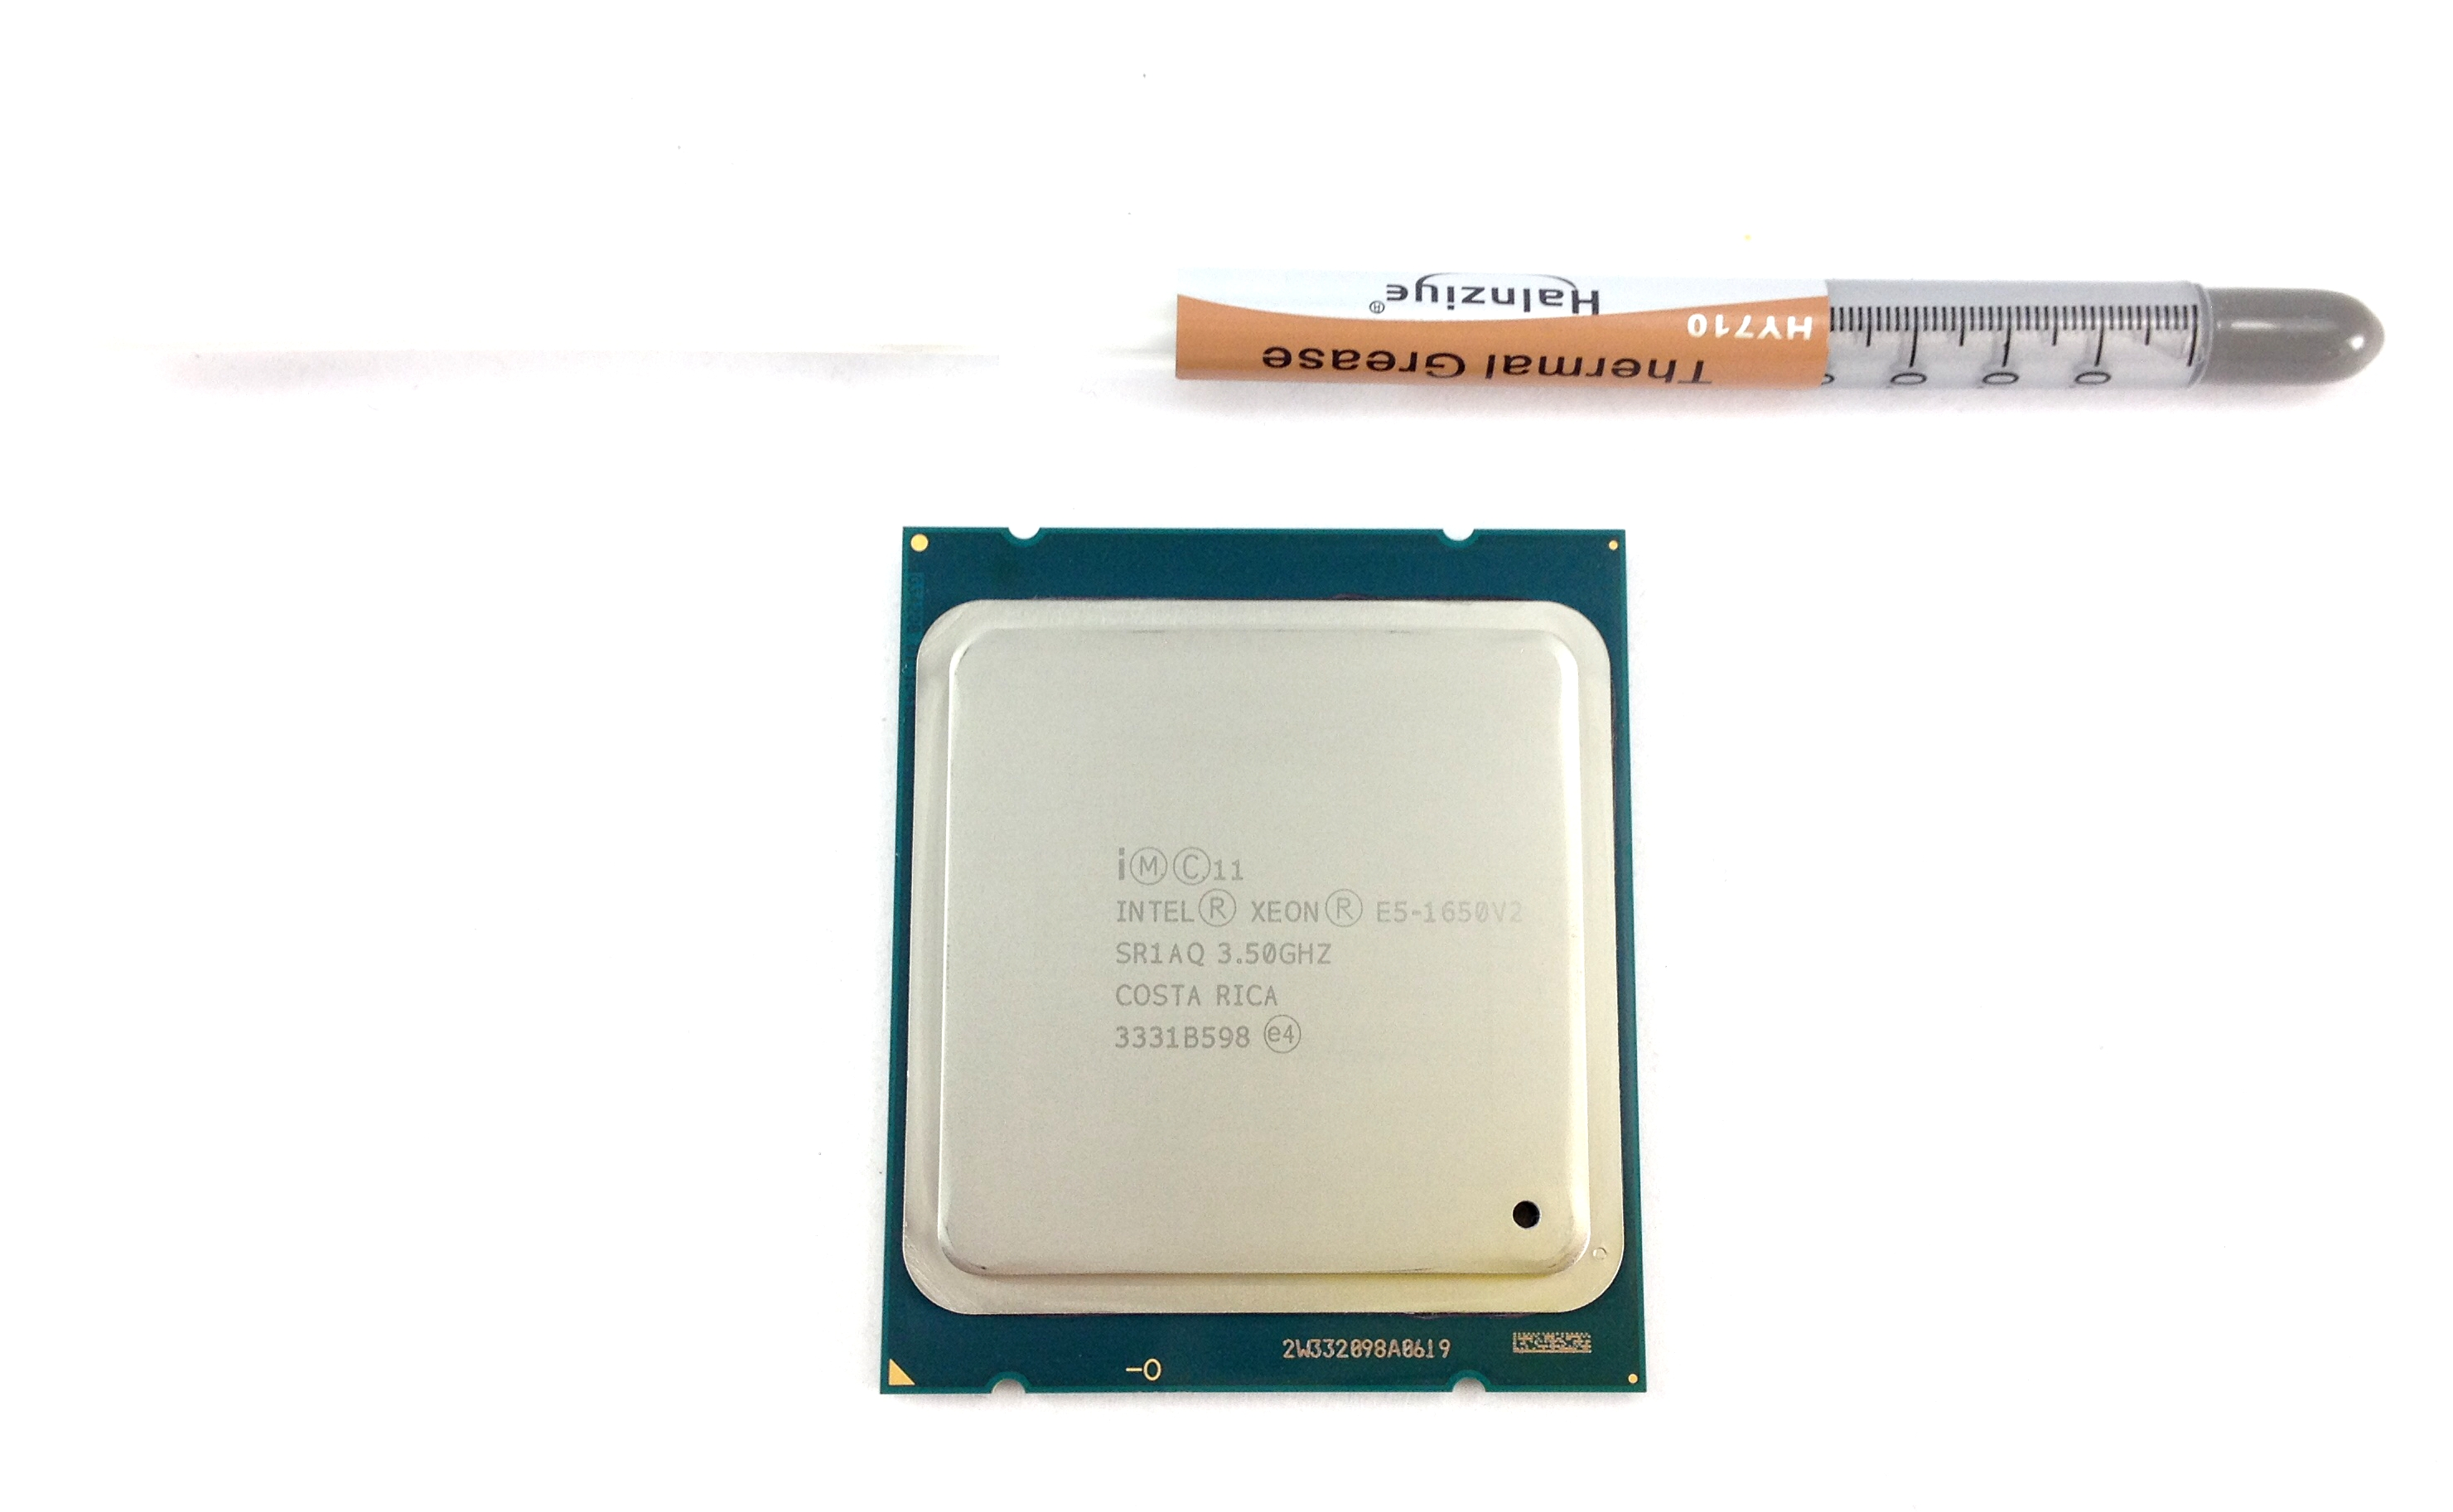 Details about E5-1650V2 Intel Xeon E5-1650 v2 3 5GHz 6 Core 12MB LGA2011  CPU Processor